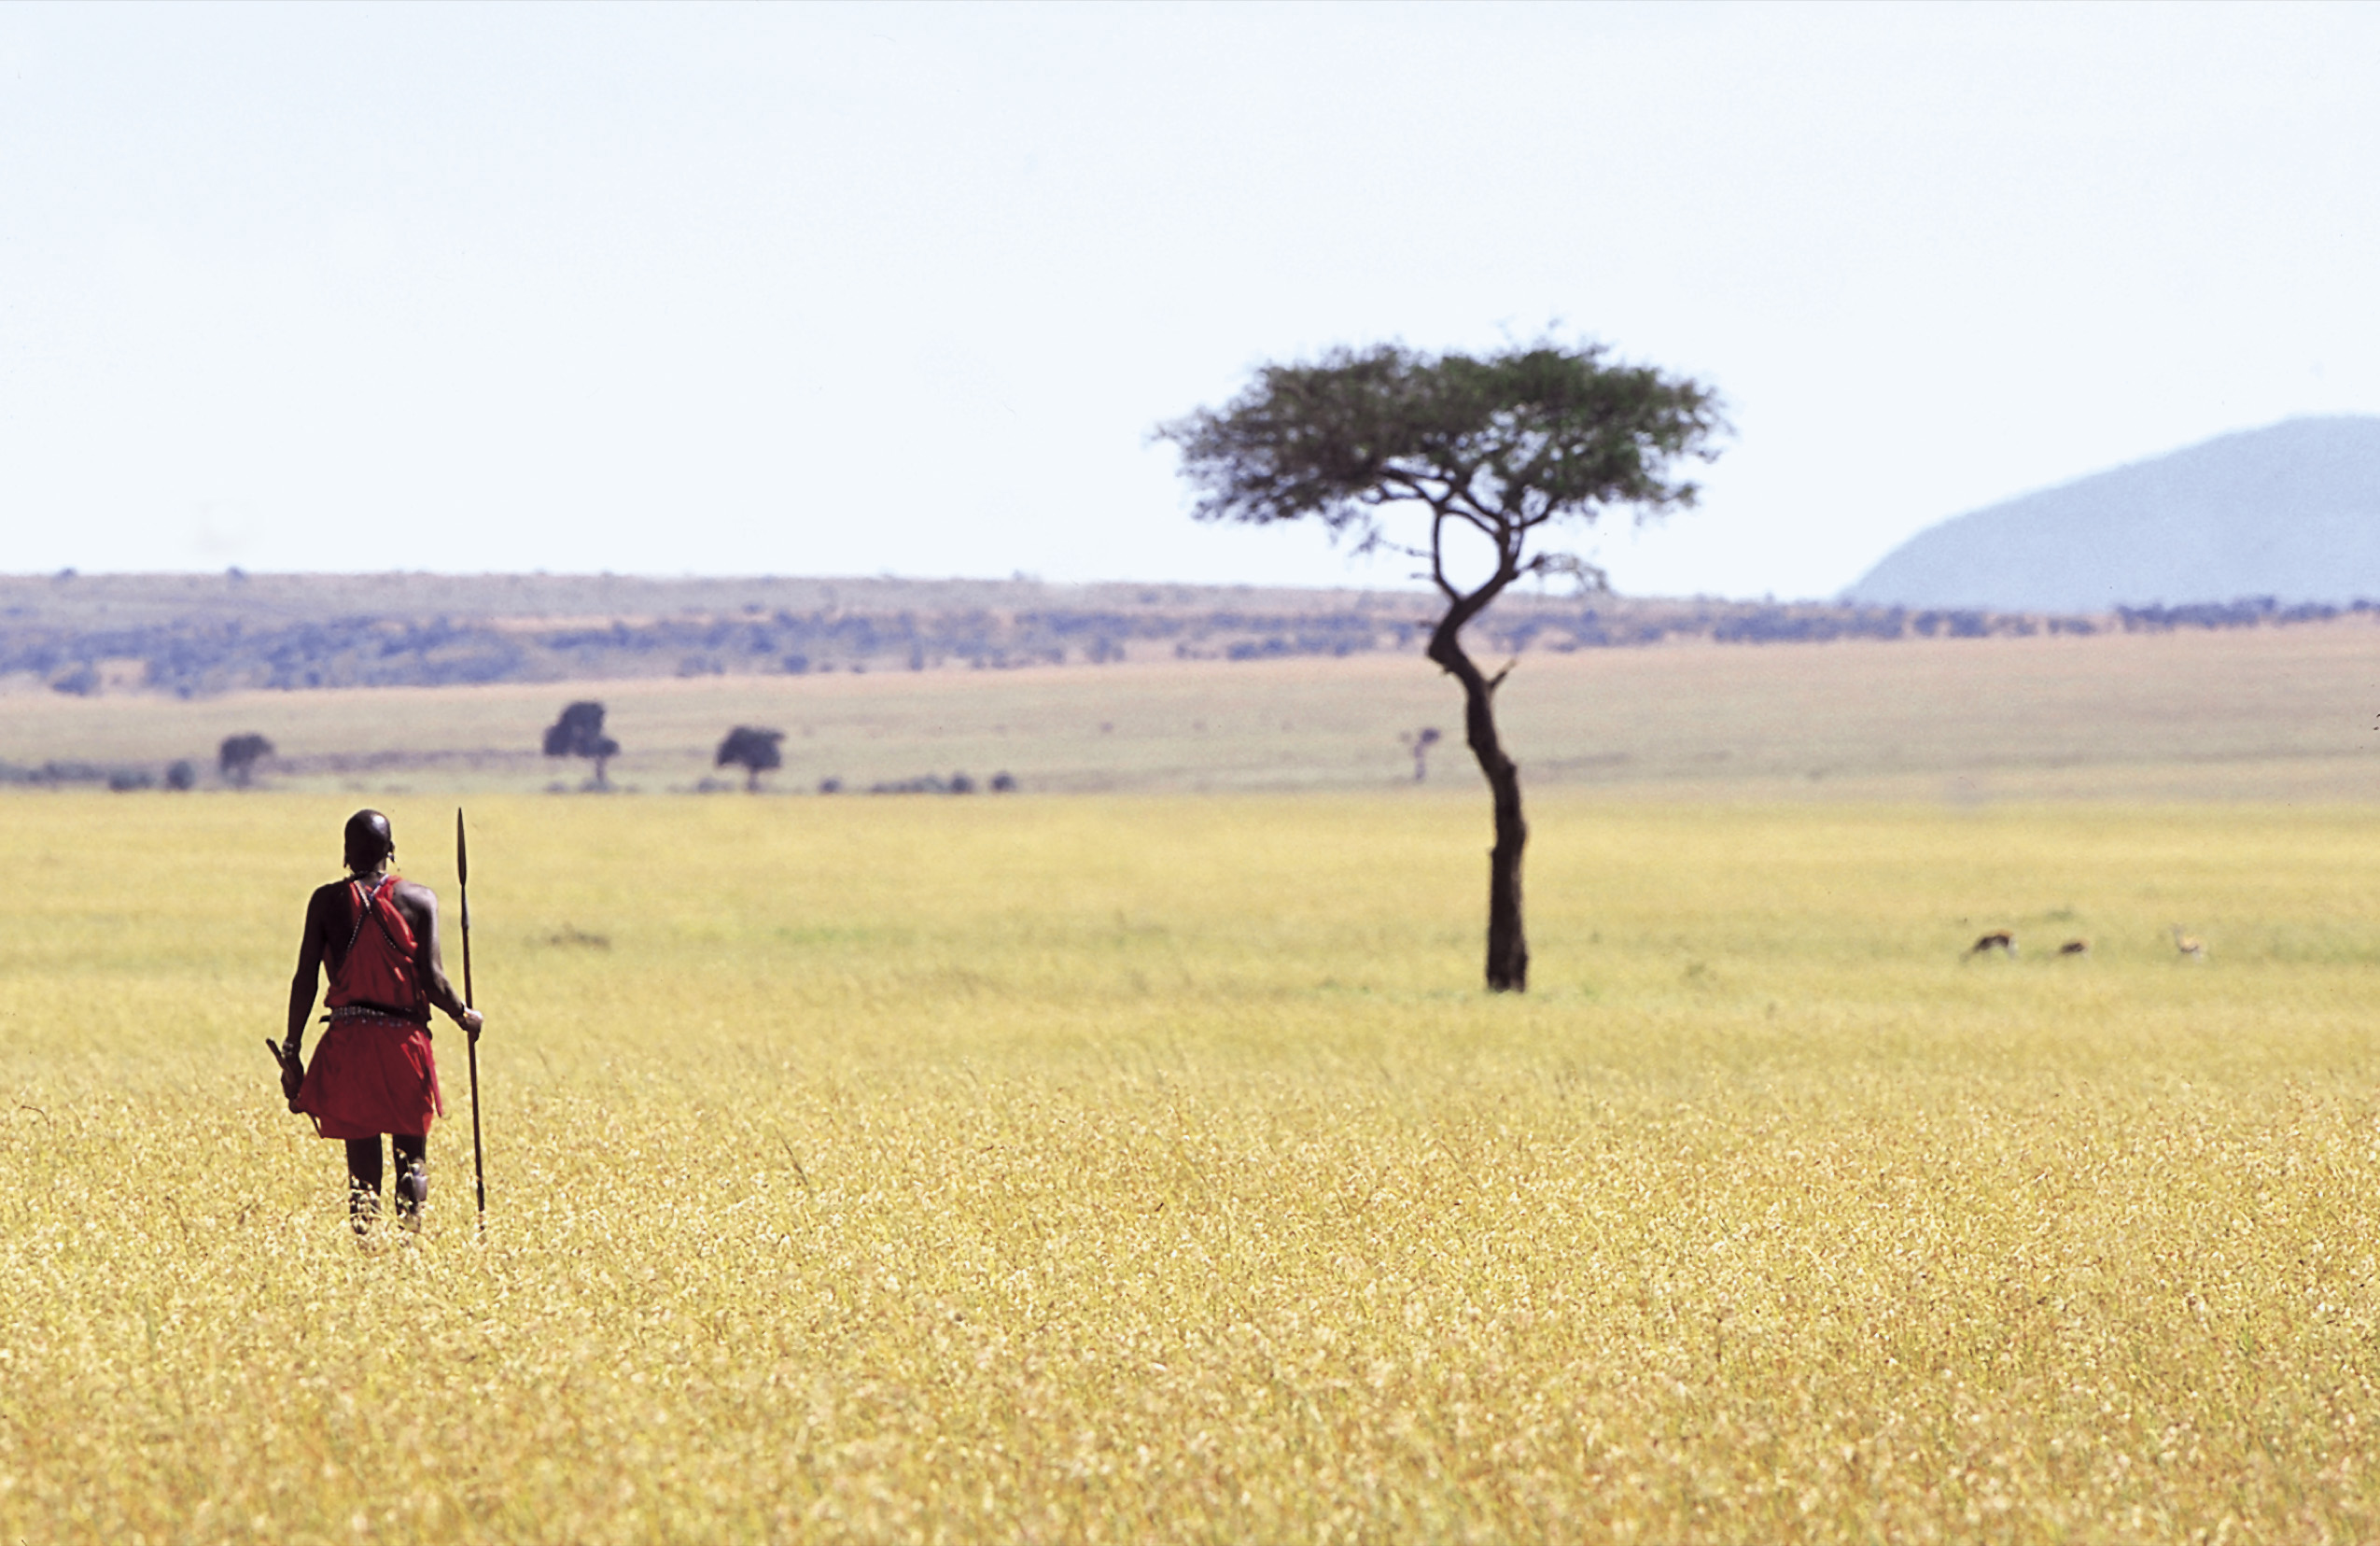 Maasai warrior walking in a field